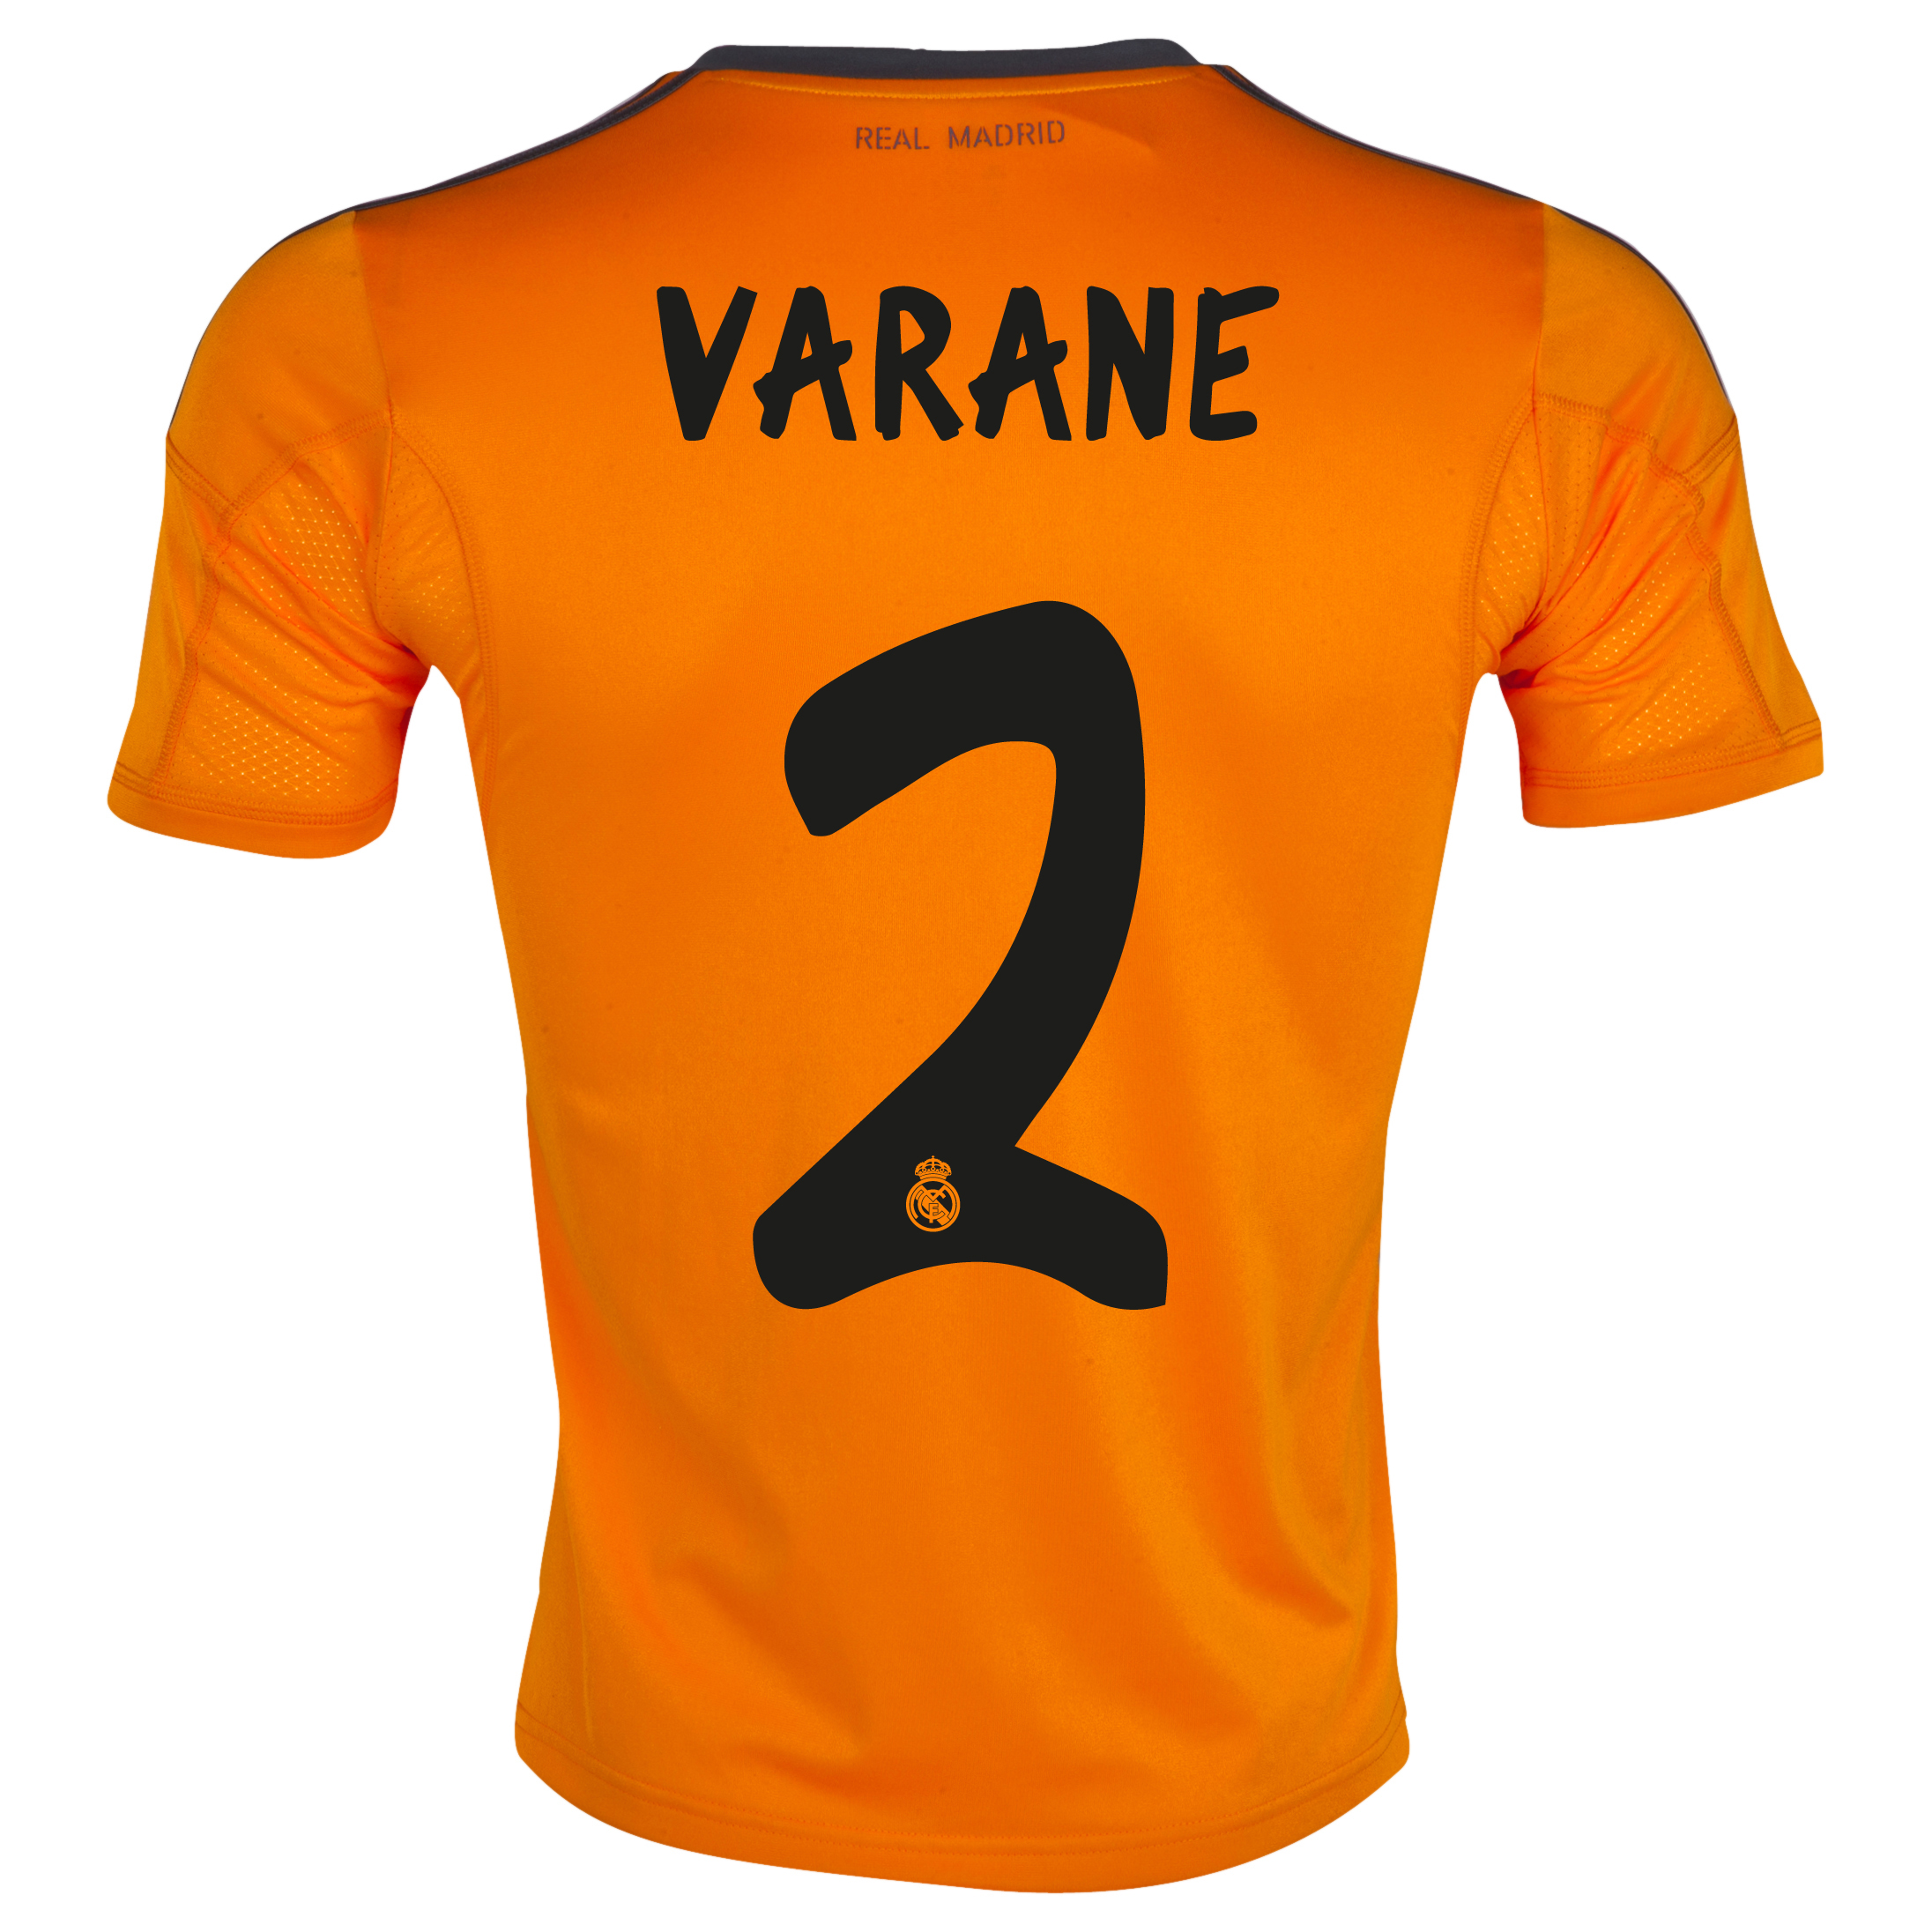 Real Madrid Third Shirt 2013/14 with Varane 2 printing